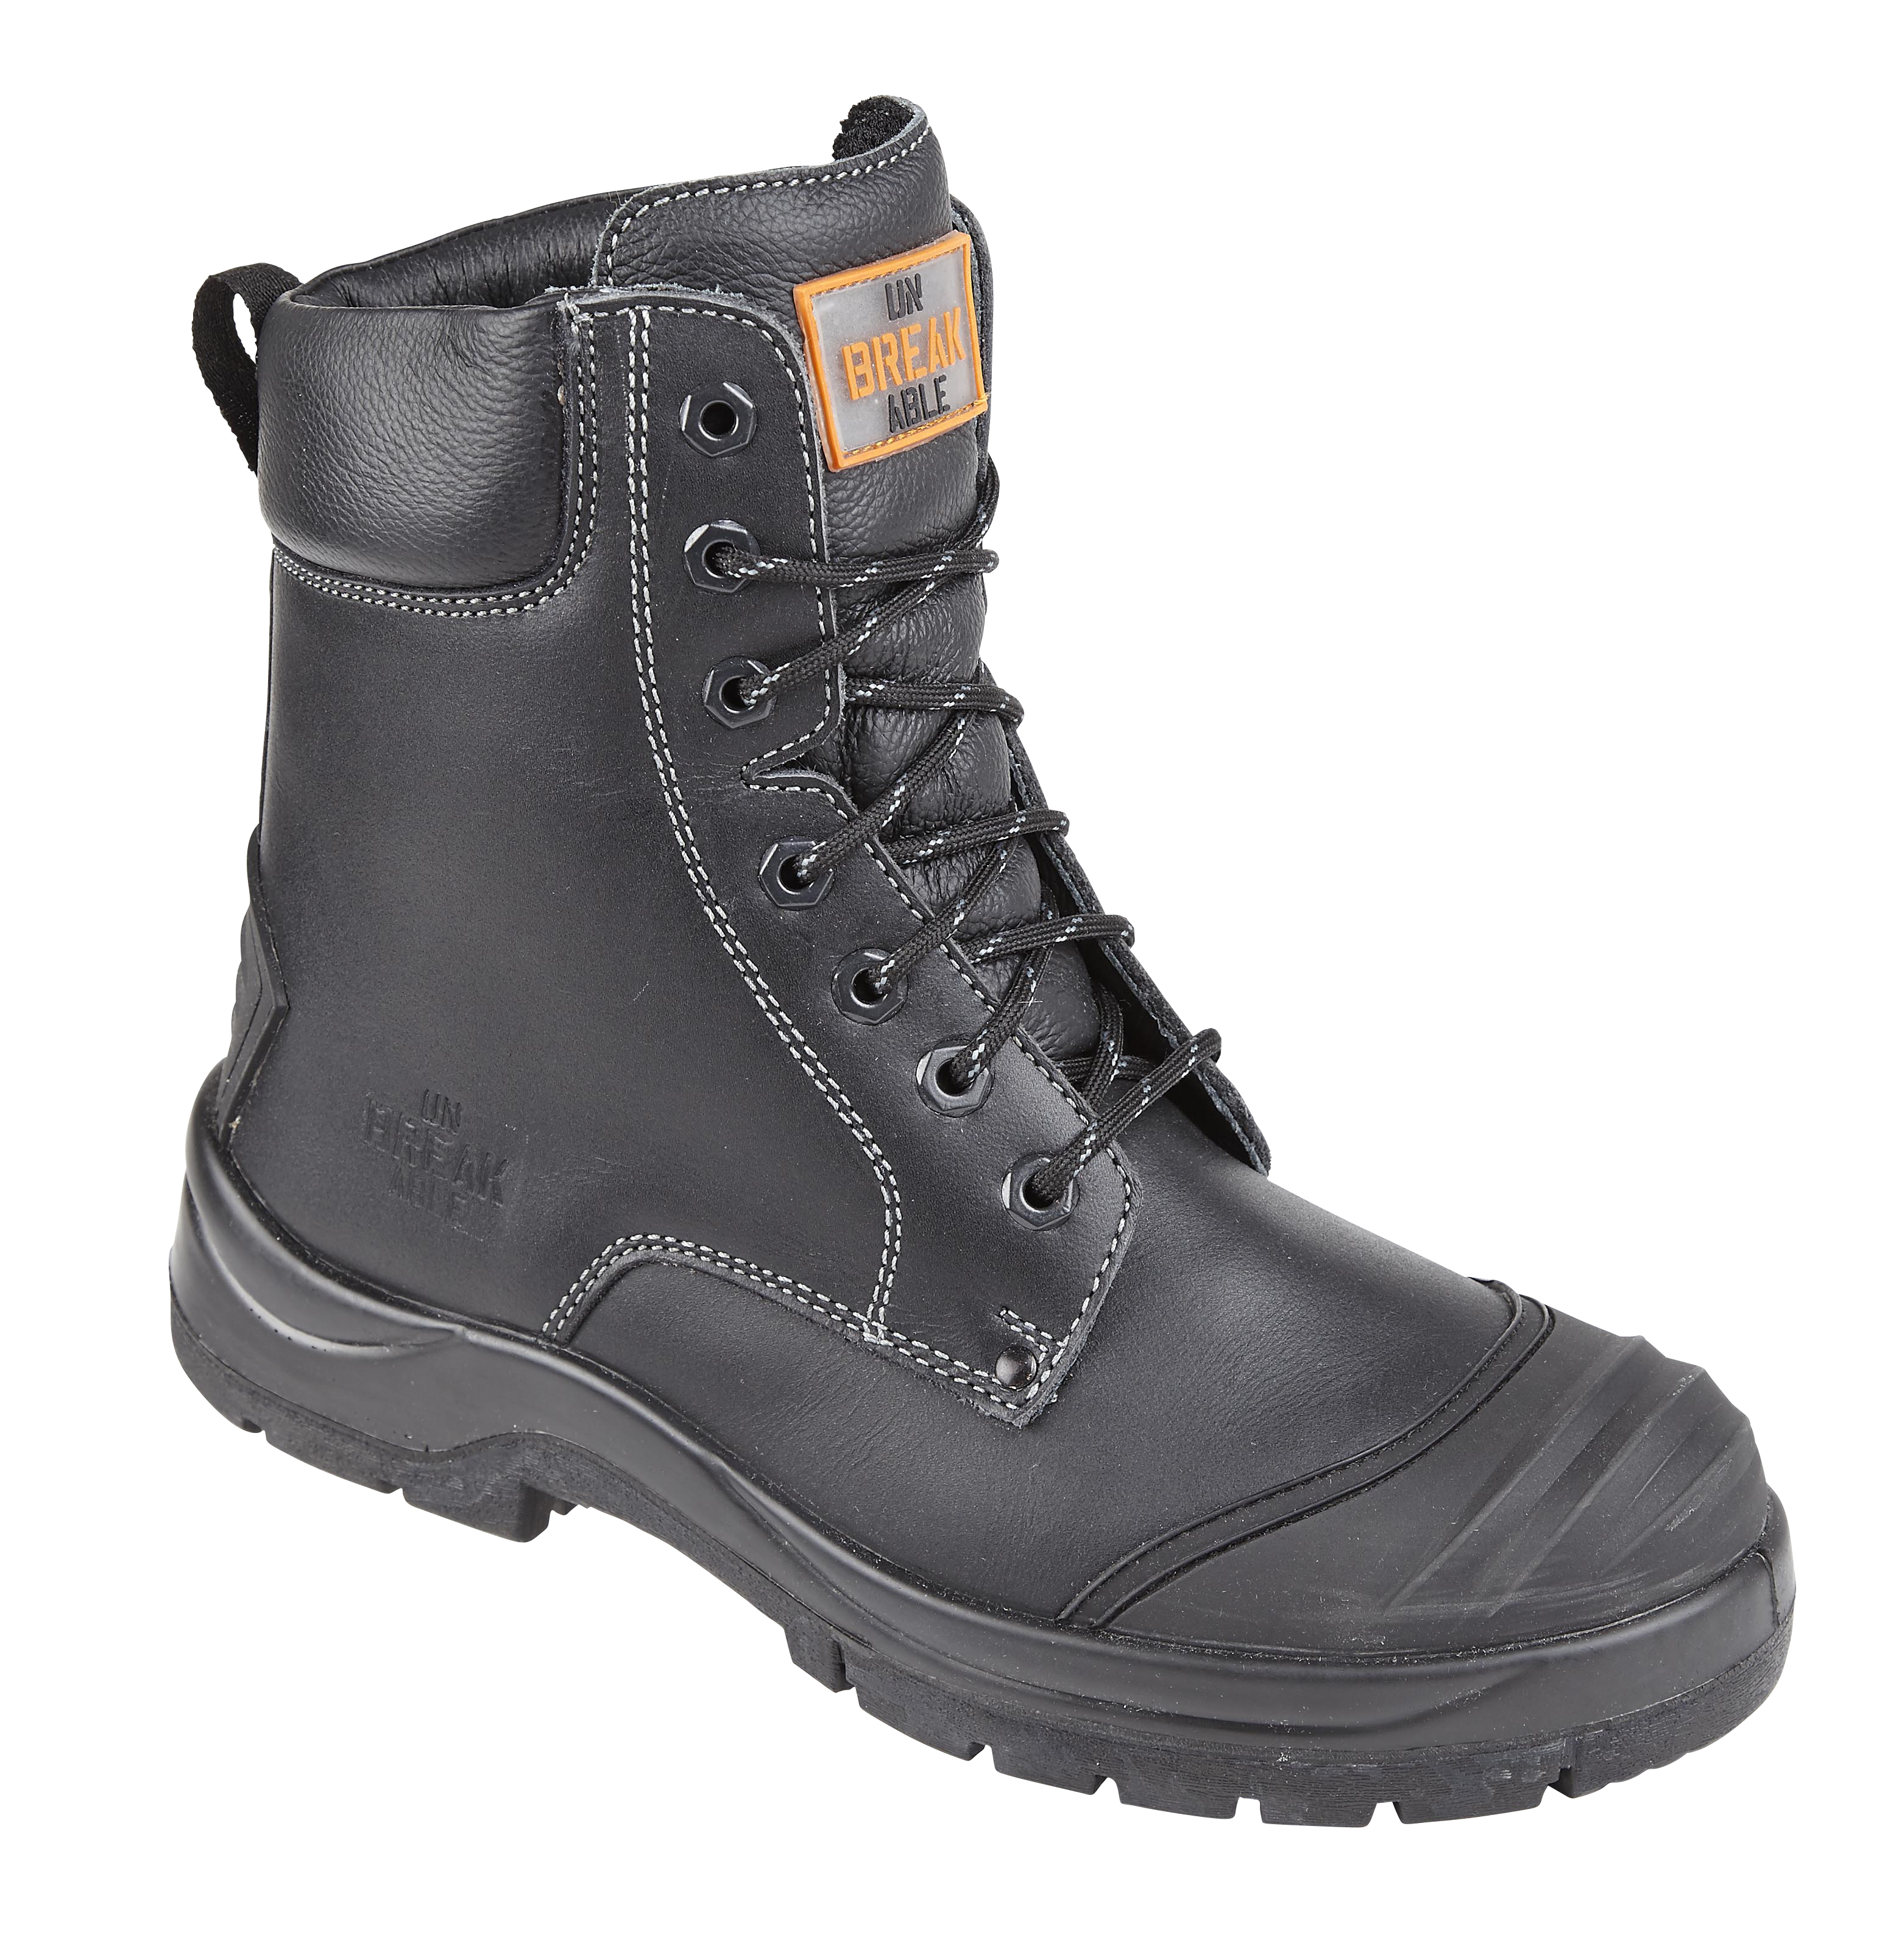 dda6fcded517 Unbreakable DEMOLITION Combat Safety Boot with Rhino ridge bump cap   kick  plate